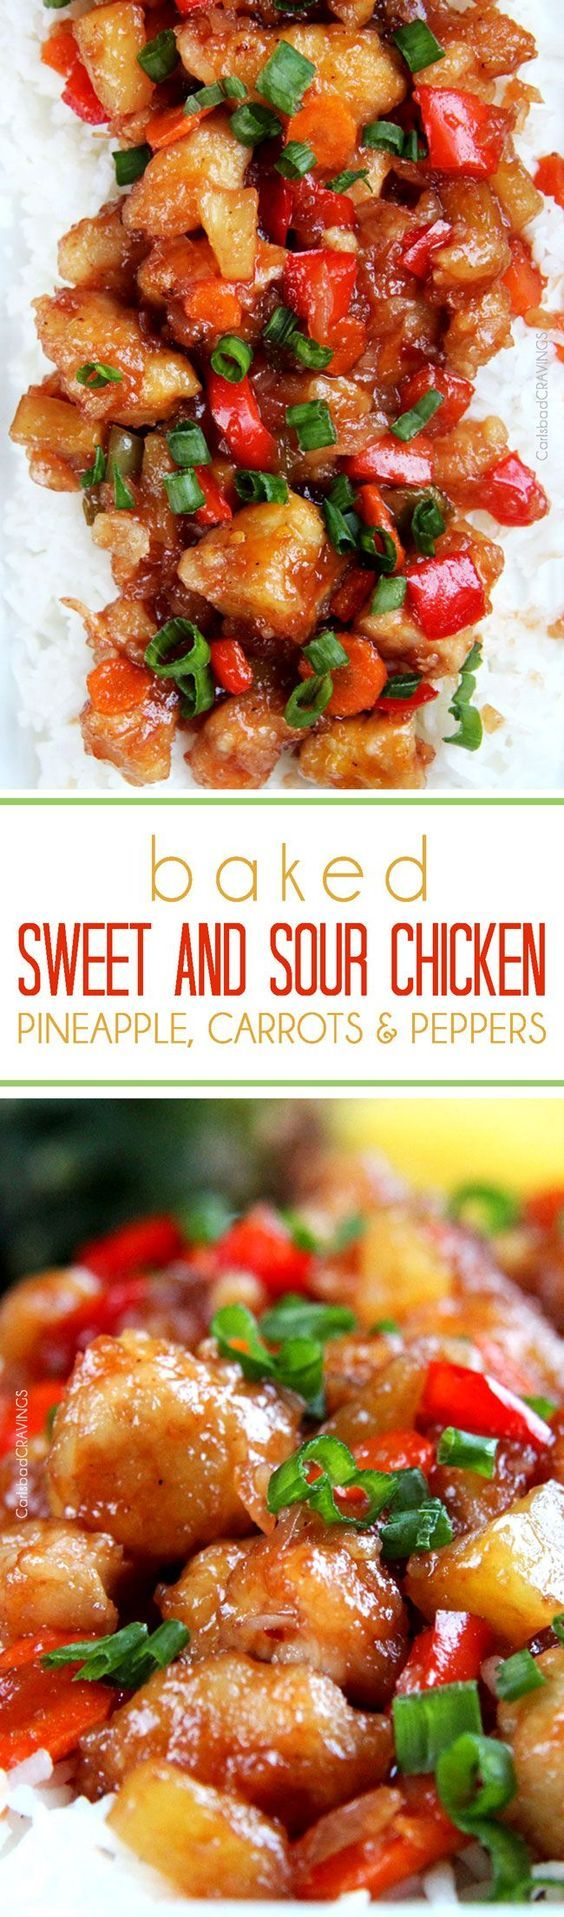 The BEST Sweet and Sour chicken - takeout OR homemade - I have ever had in my entire life! It is also baked with pineapple, carrots, onions and bell peppers all in ONE BAKING DISH! No need to stir fry extra veggies! #sweetsourchicken #chinesefood #fakeouttakeout: